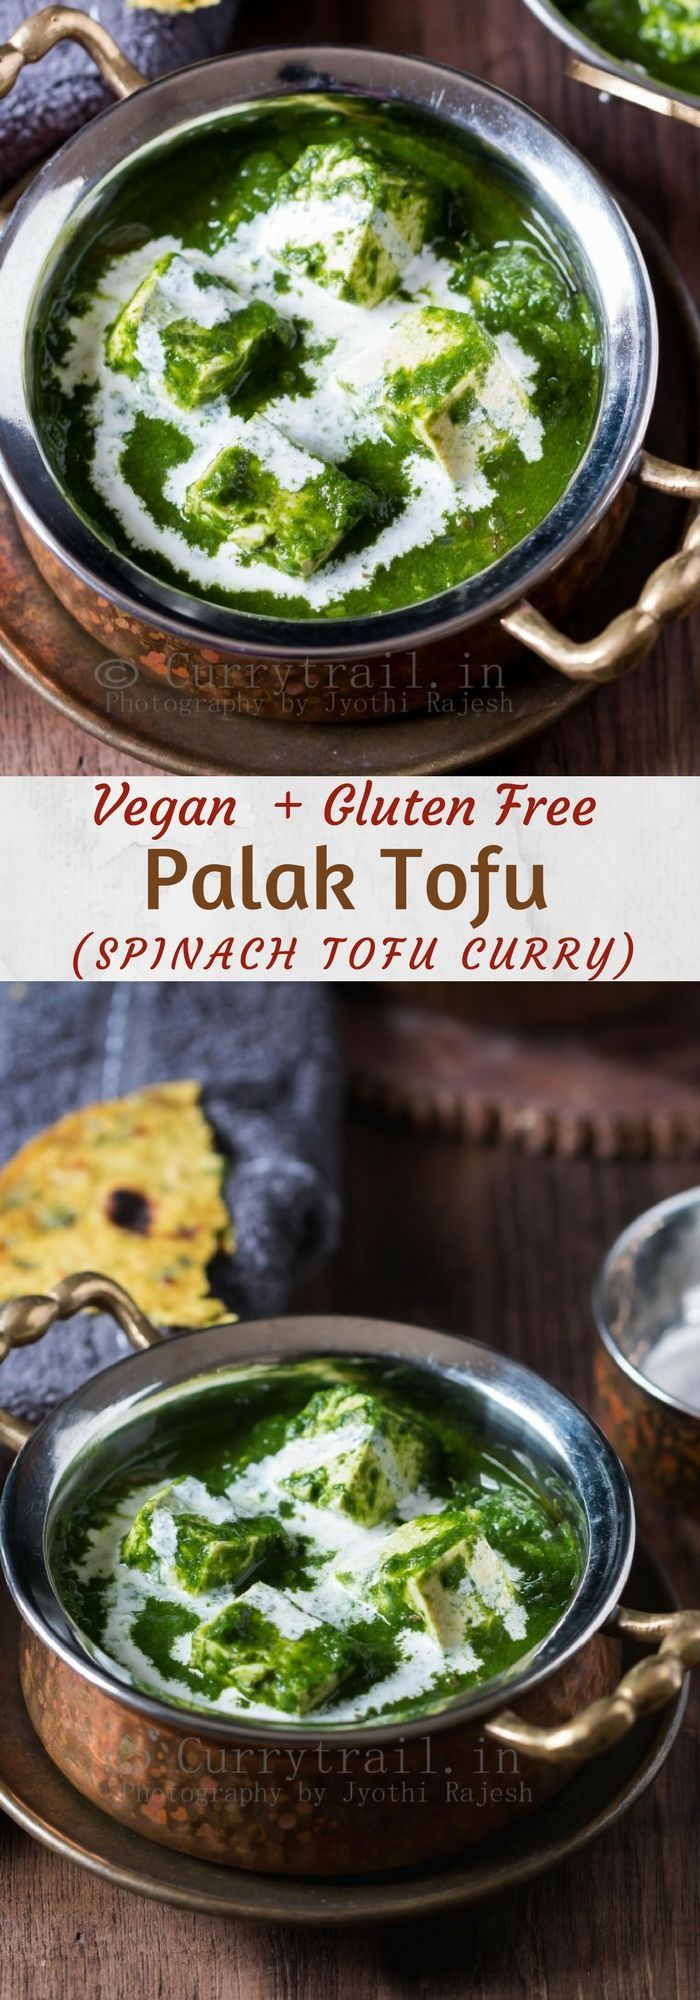 Palak tofu is a vegan version of palak paneer. This is Tofu cooked in spinach curry with mild spices is lip smacking good when served with rotis or naan. Palak tofu curry will be ready in less than 30 minutes and it's VEGAN! #vegancurry #veganlife #palaktofu #tofucurry #tofu #veganpalakpaneer